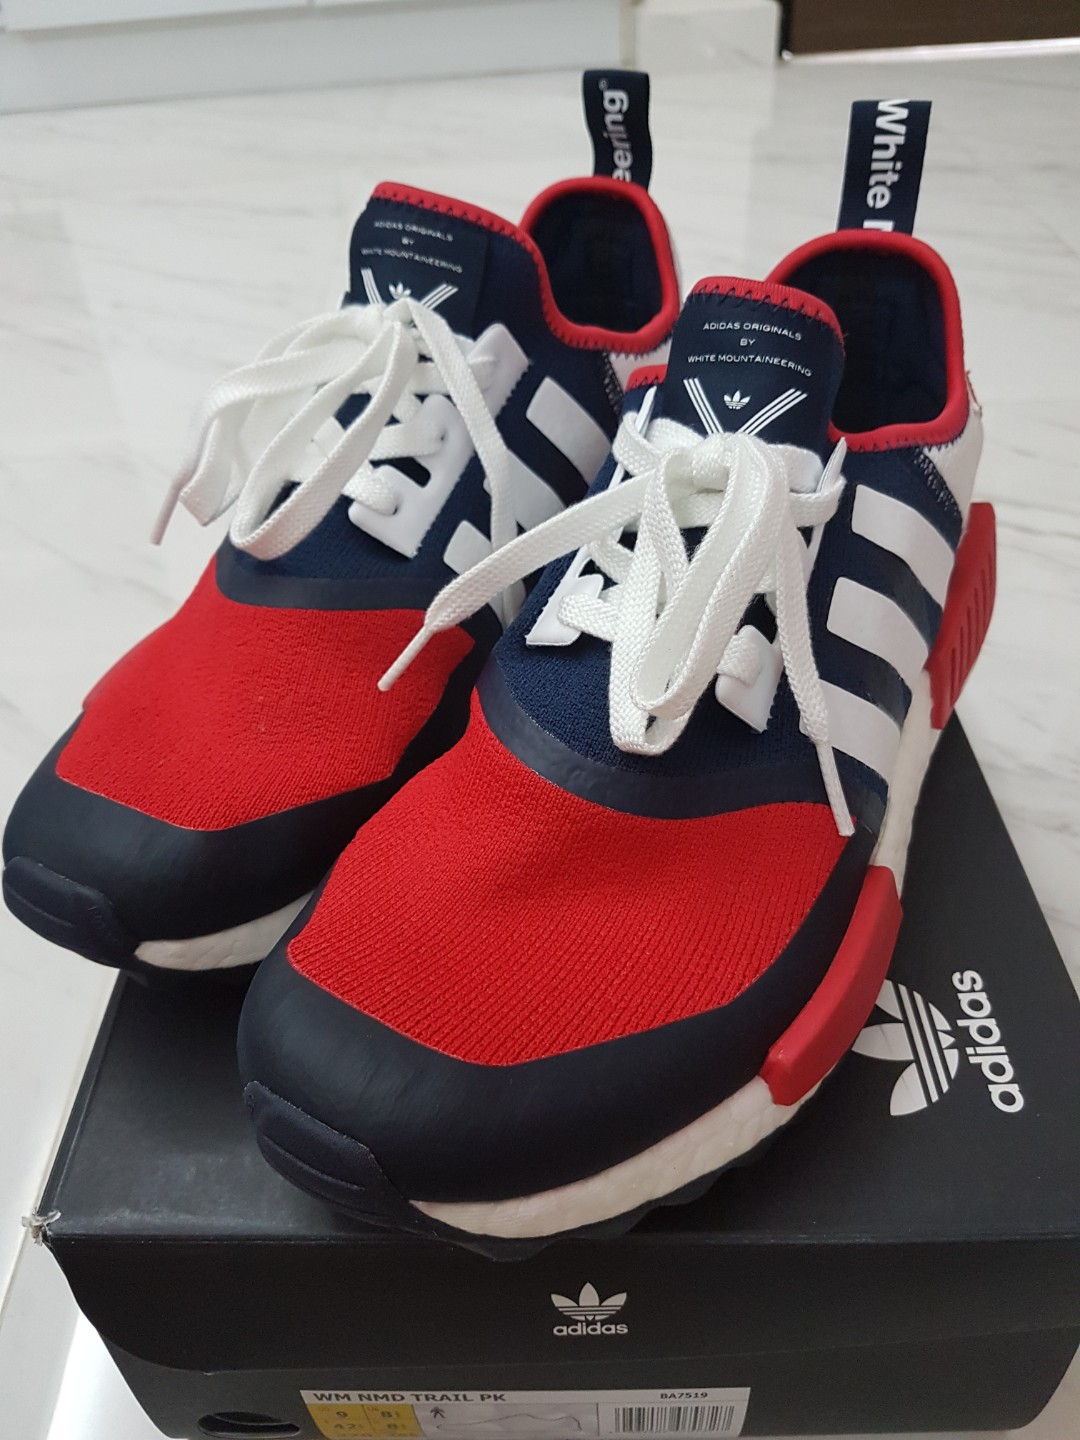 6db0e2591 Adidas NMD x White Mountaineering